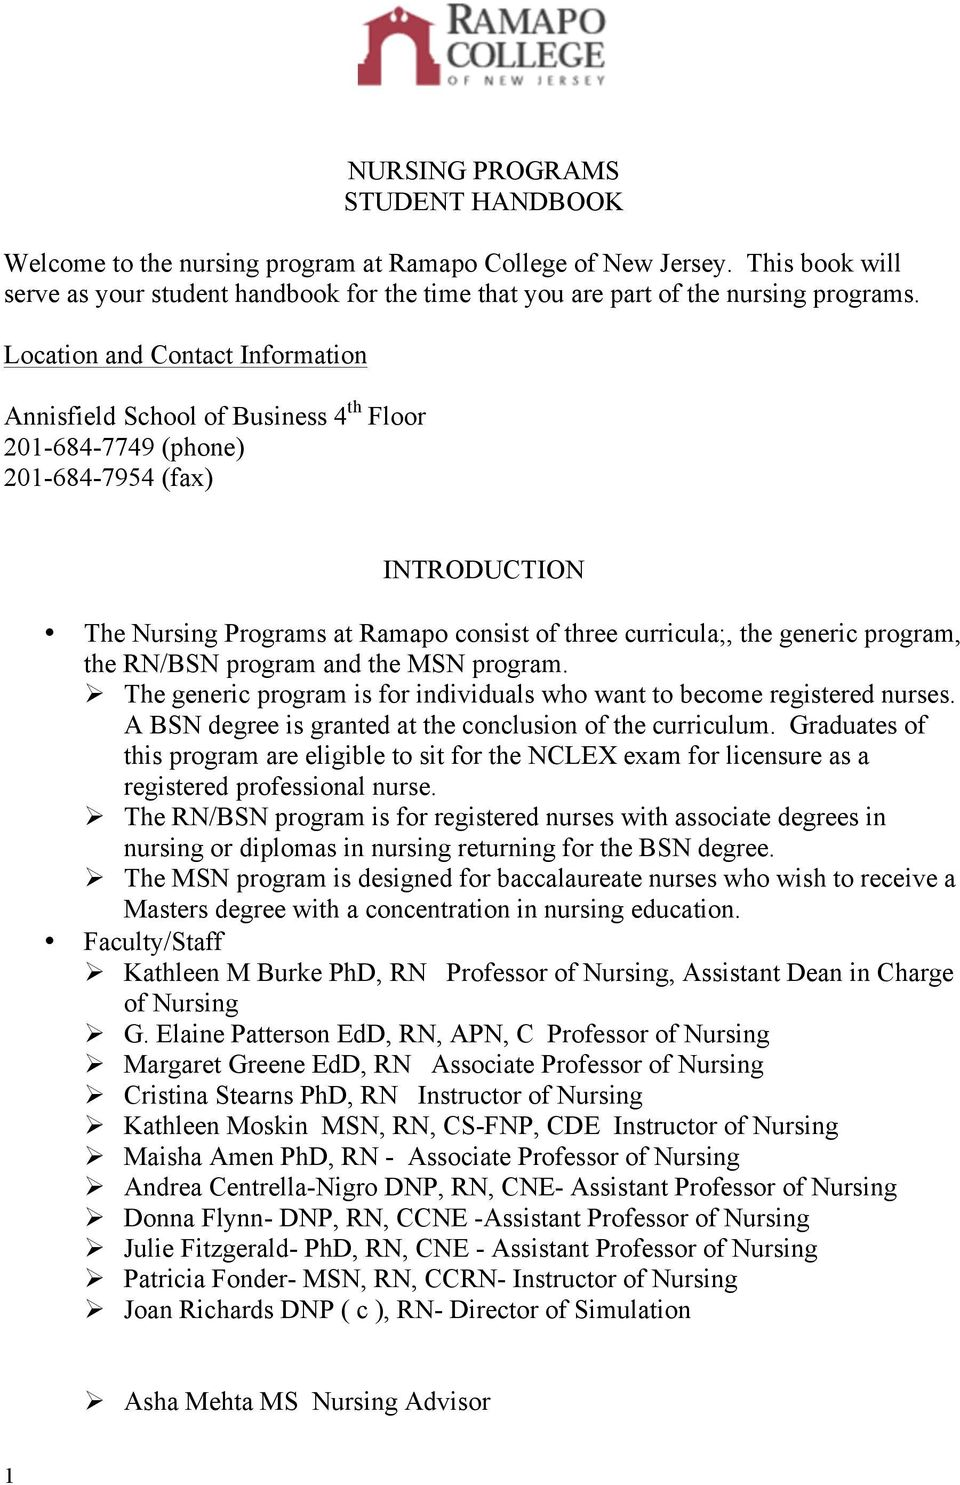 program, the RN/BSN program and the MSN program. Ø The generic program is for individuals who want to become registered nurses. A BSN degree is granted at the conclusion of the curriculum.